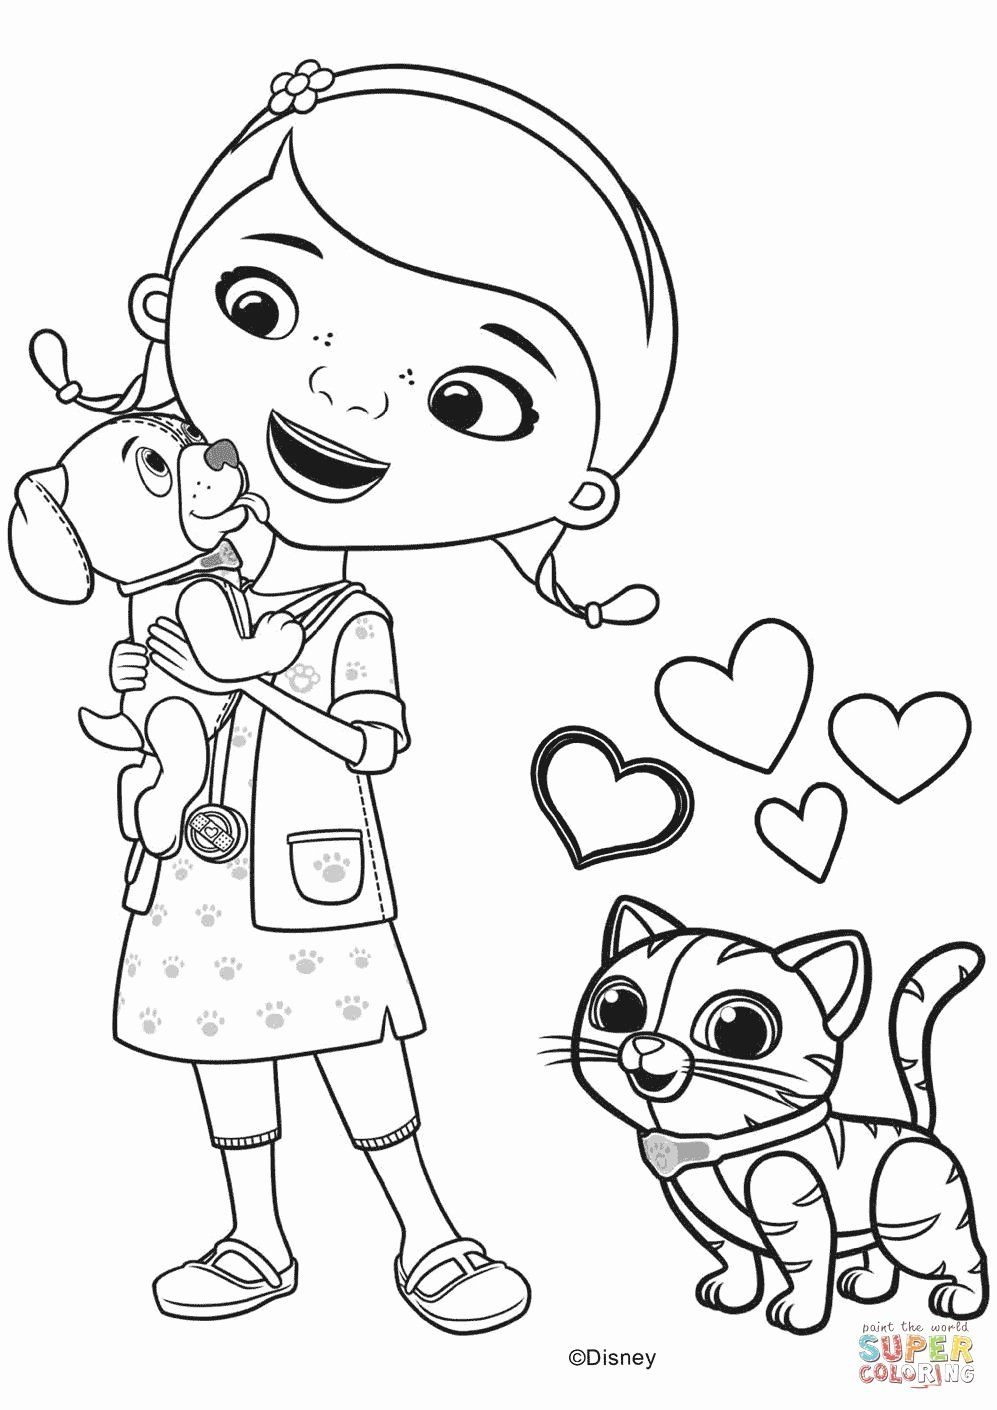 Doc Mcstuffins Coloring Book Beautiful Pin By Toni Mortensen On Coloring Pages Doc Mcstuffins Coloring Pages Disney Coloring Pages Free Coloring Pages